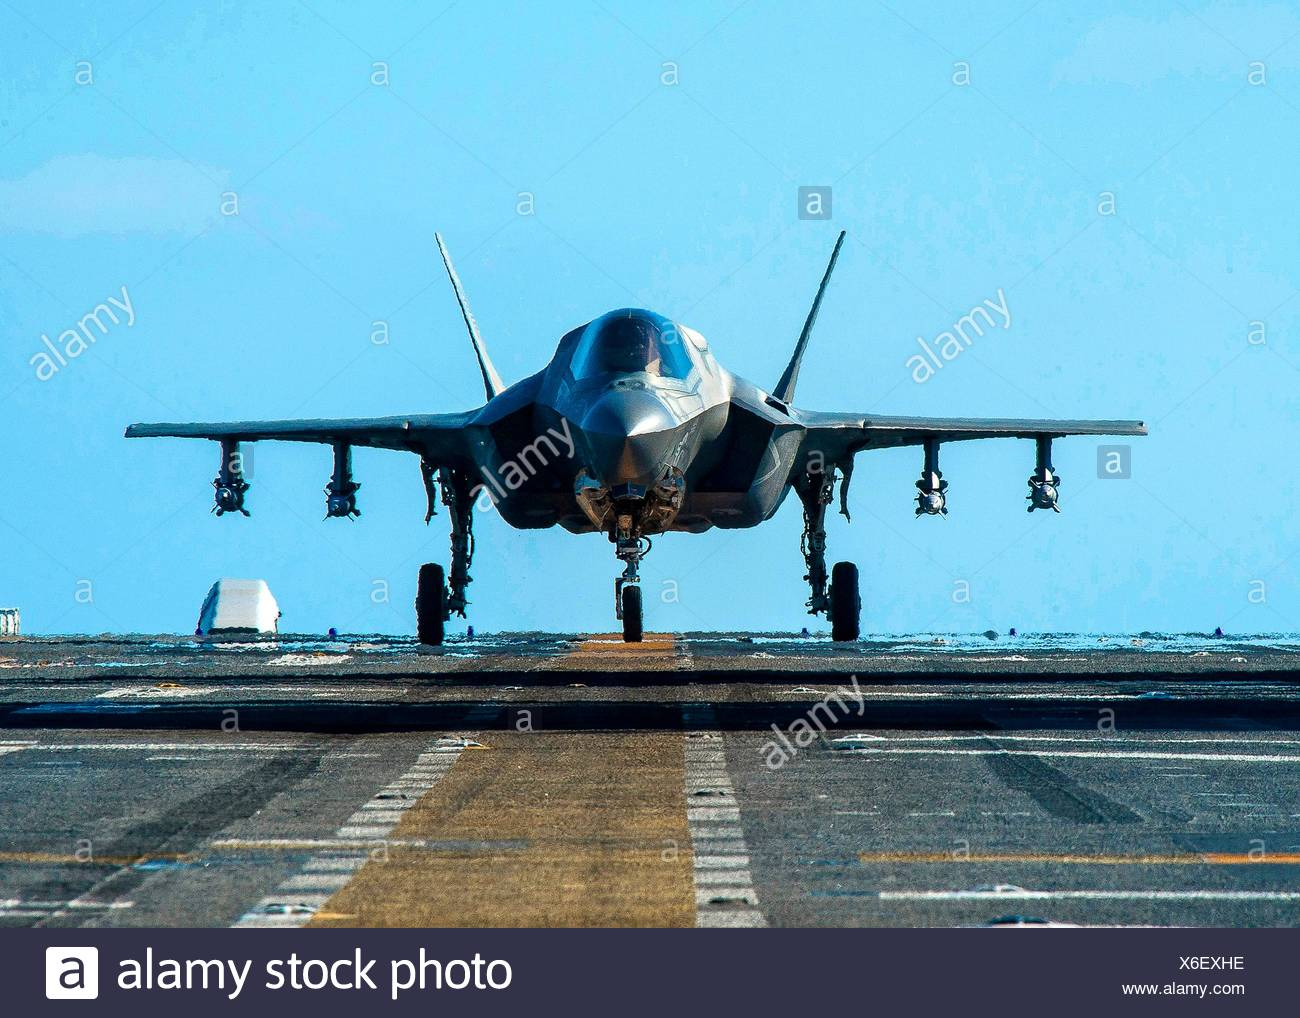 PACIFIC OCEAN (Nov. 5, 2016) An F-35B Lightning II aircraft equipped with inert 500-pound GBU-12 Paveway II laser-guided test bombs prepares for - Stock Image